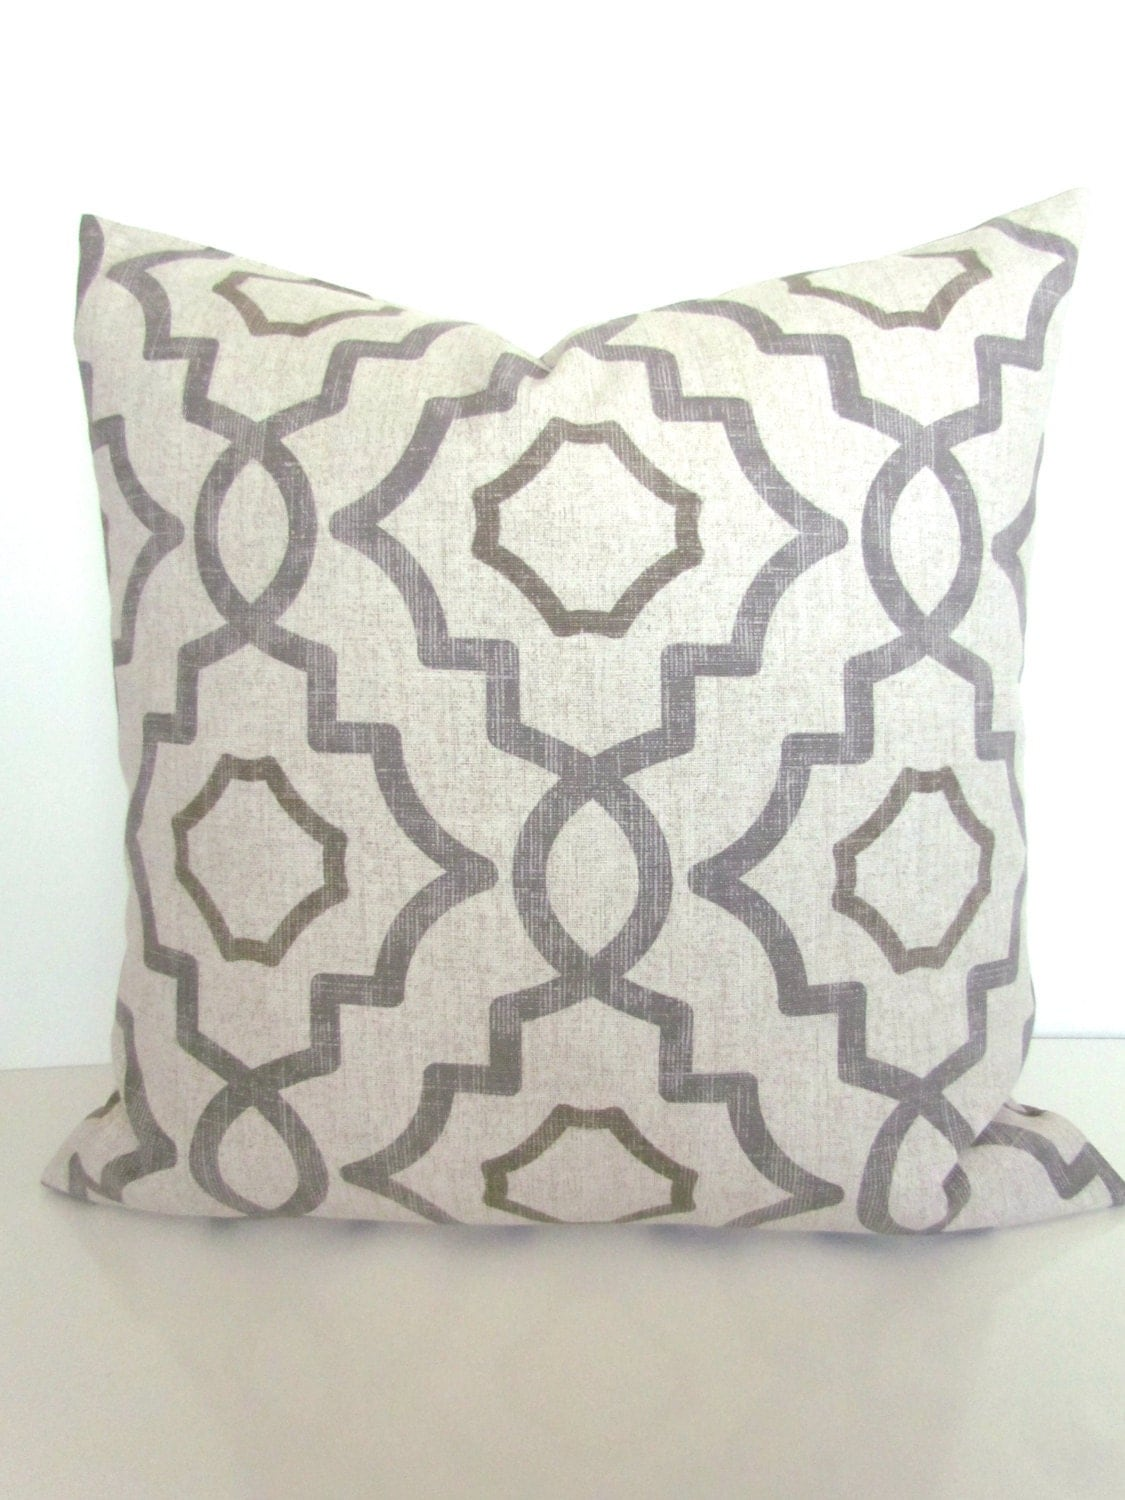 Gray Throw Pillows For Bed : GRAY PILLOWS GREY Throw Pillow Covers Tan Pillows Grey